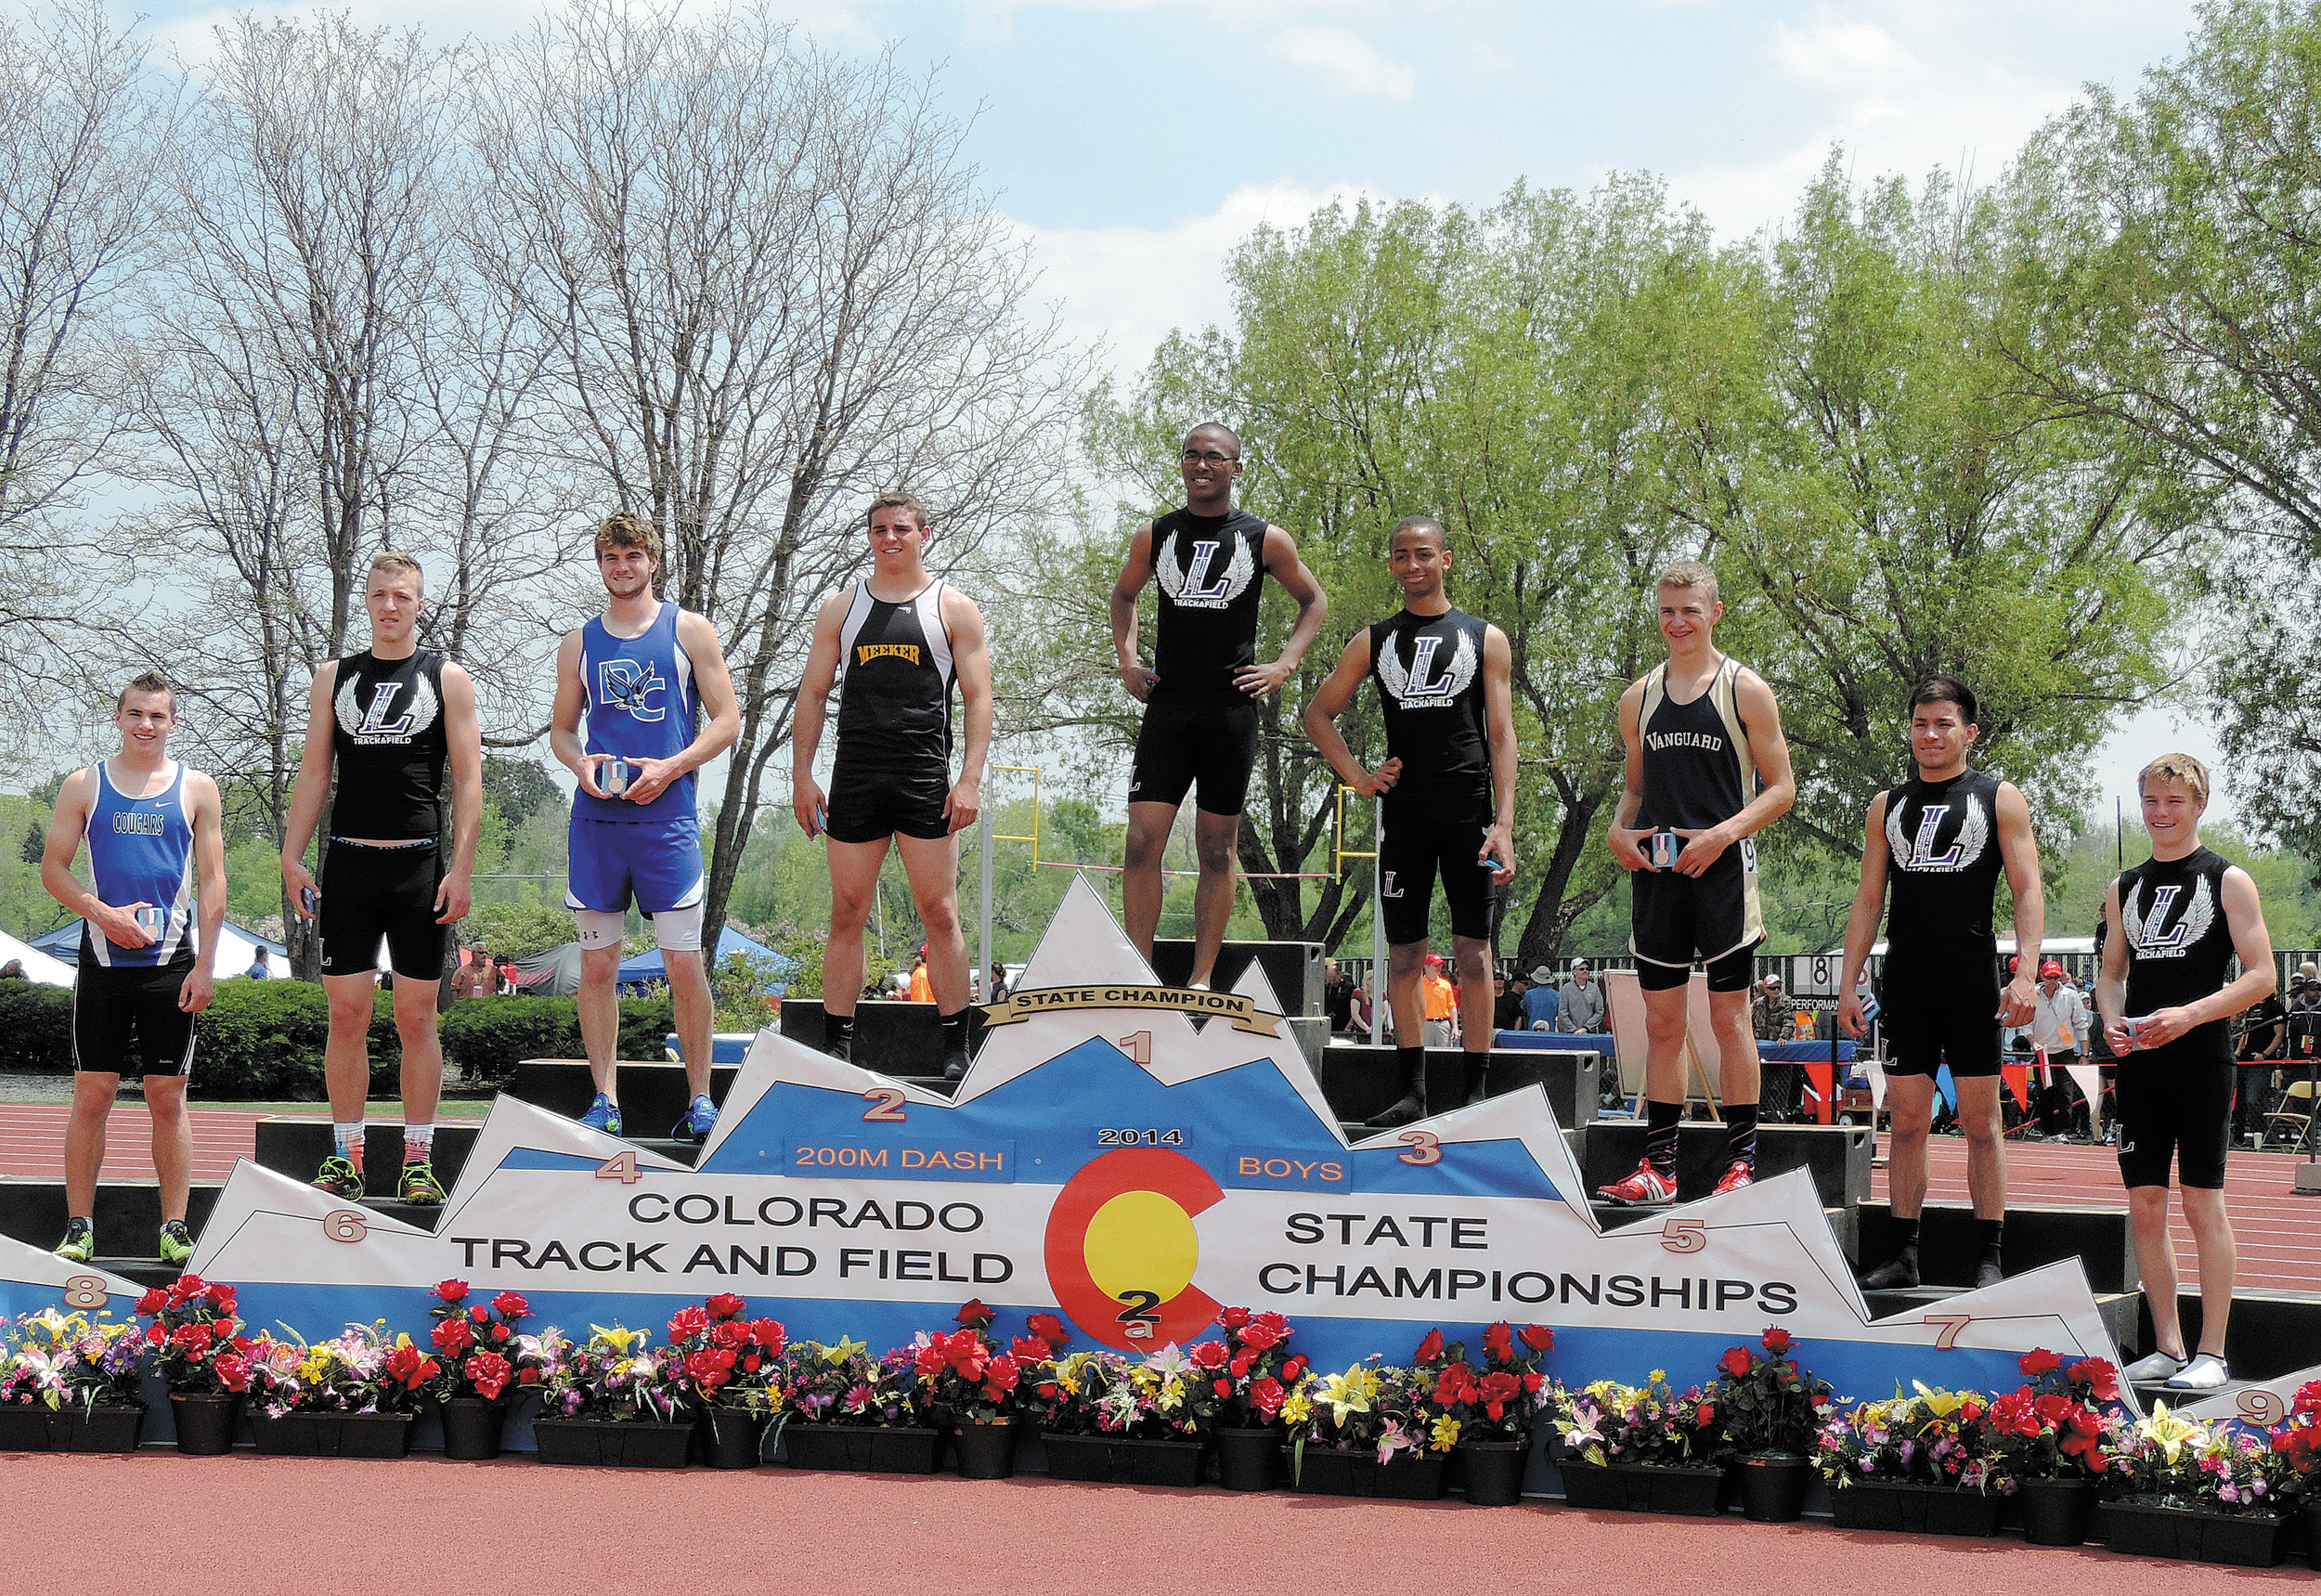 There were six Lutheran athletes on the podium May 17 for the Class 2A 400 meters. From left, Josh Clausen (sixth place), Chris Youngs (first place), Kent Harris (third place), Darian Perez (seventh place) and Ryan Lee (ninth place).